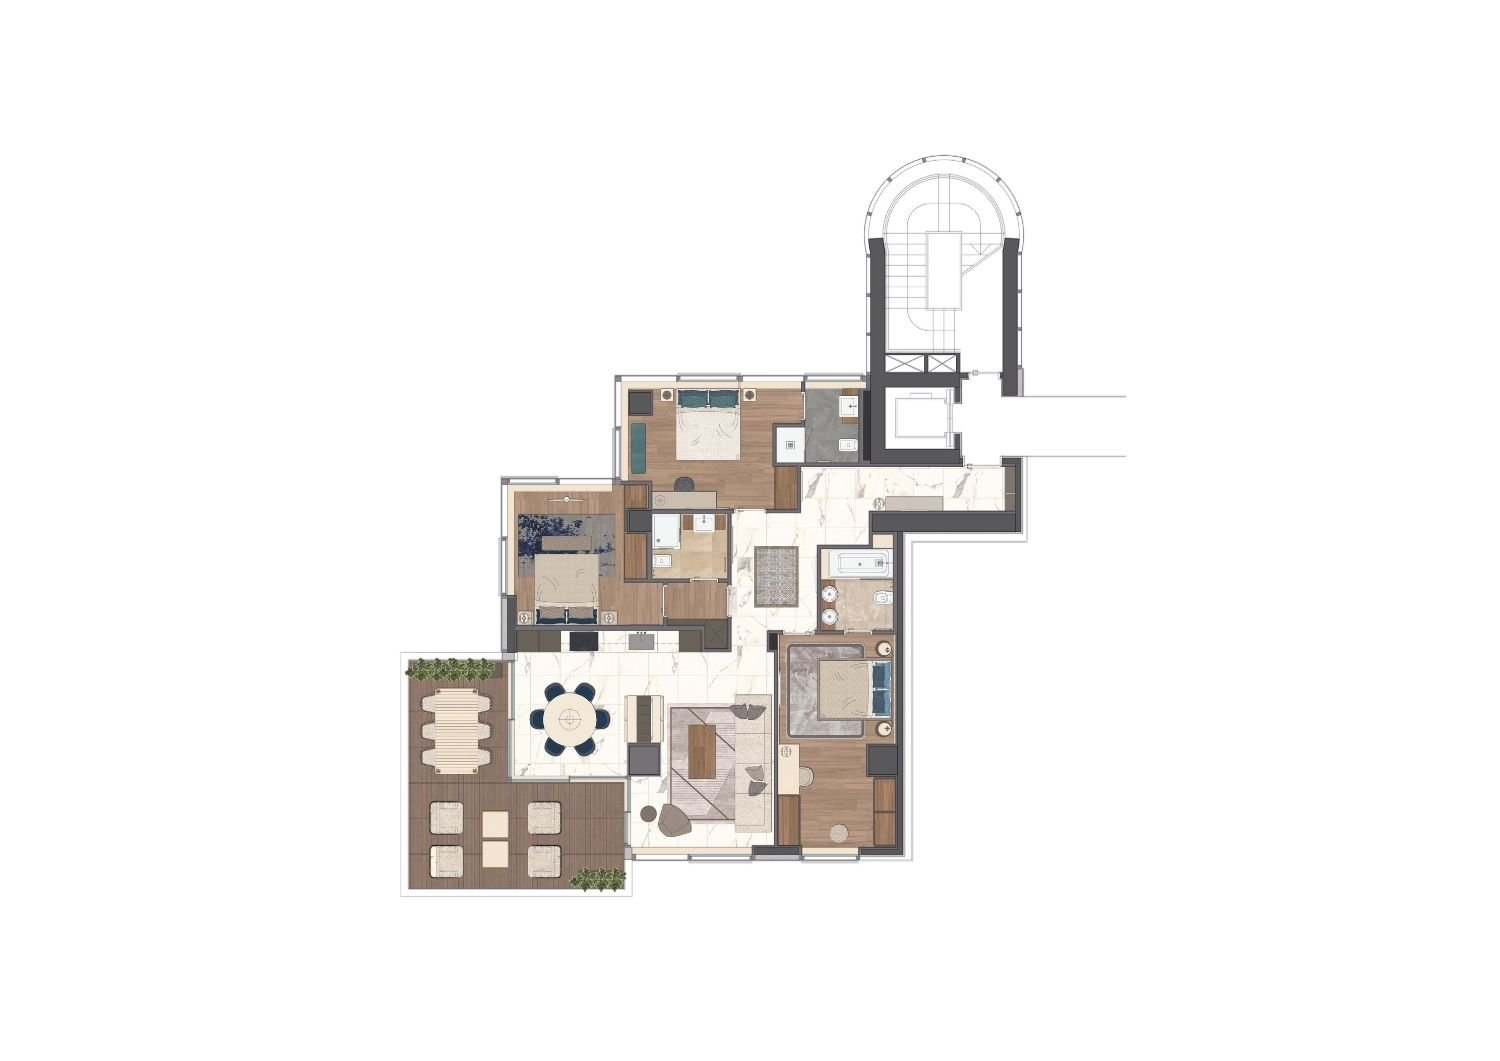 The apartment represents a unique architectural solution, combining three bedrooms and a large living area with access to the covered veranda and a magnificent panorama. Studio D73}